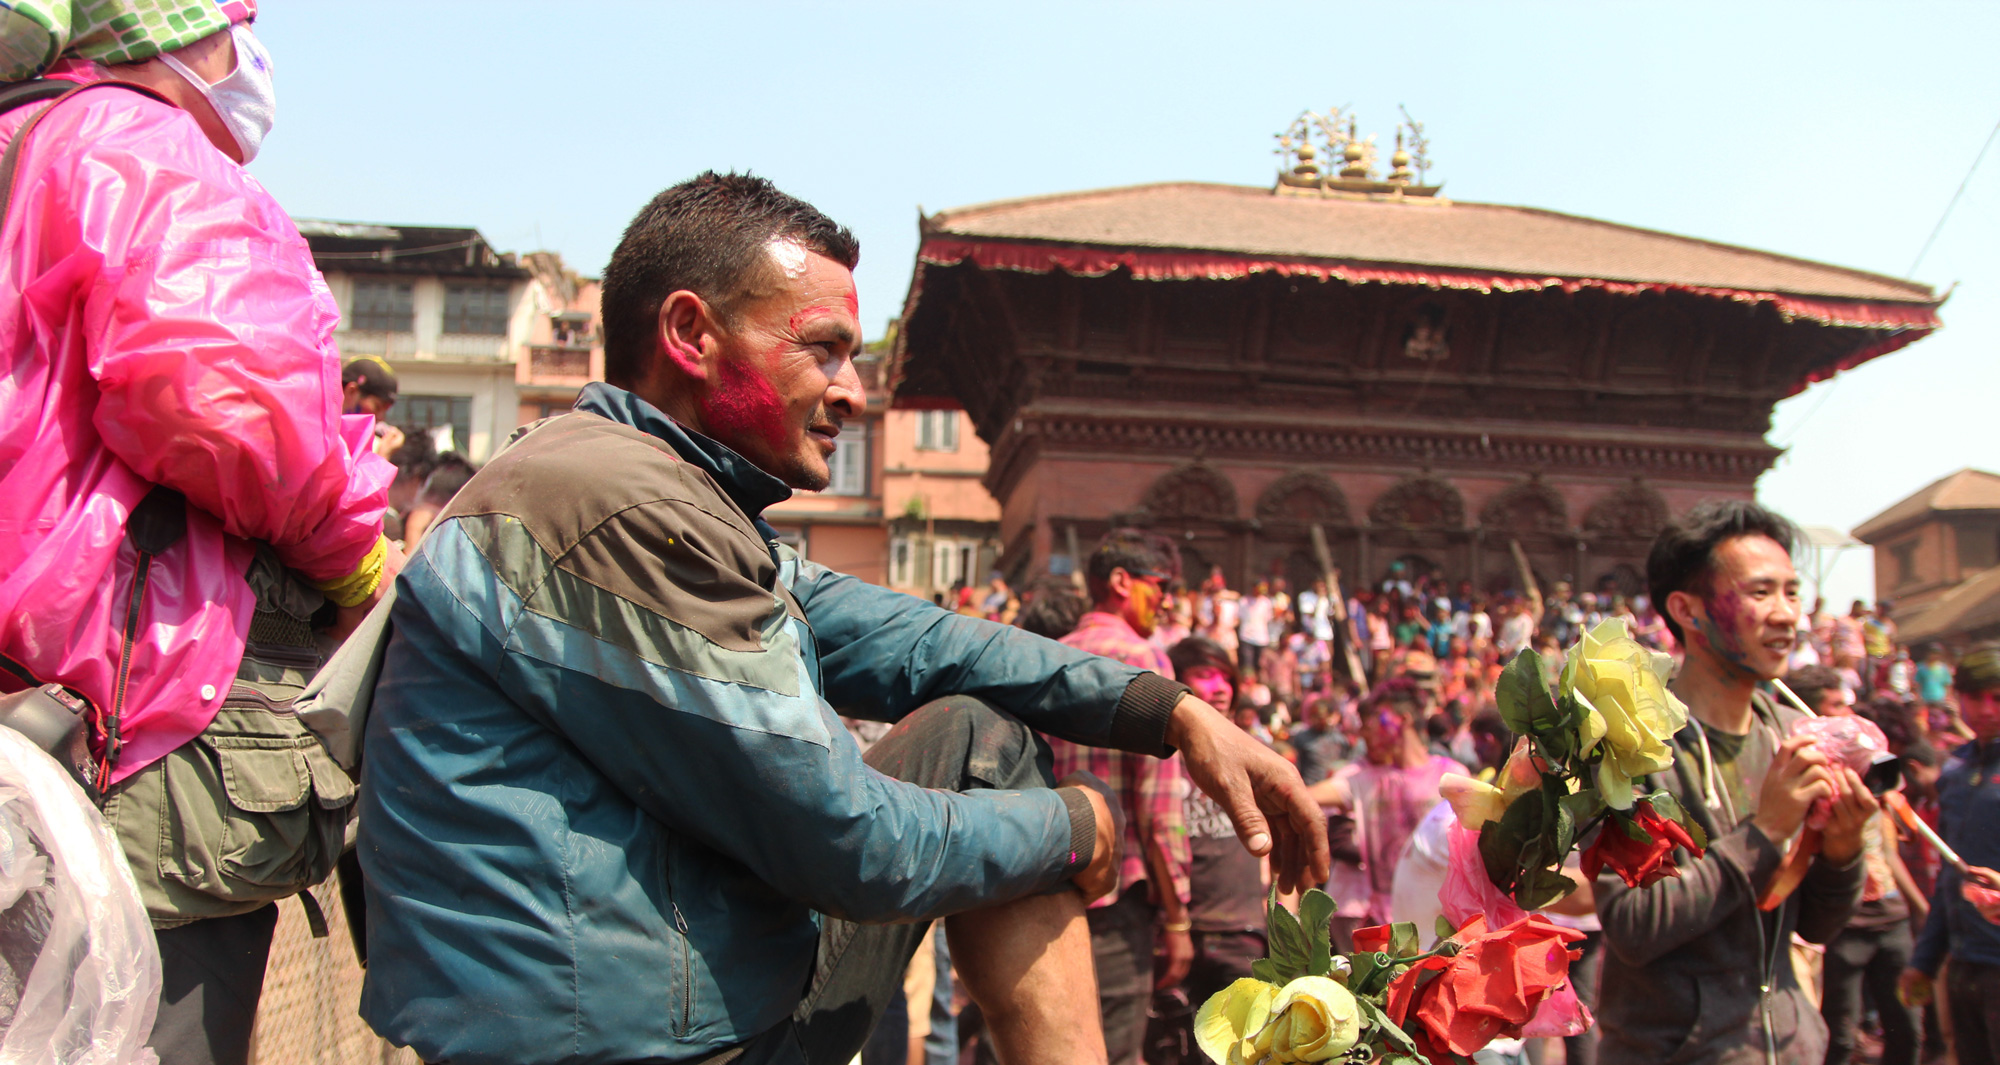 'I have not earned a single rupee, but Holi brings immeasurable happiness'